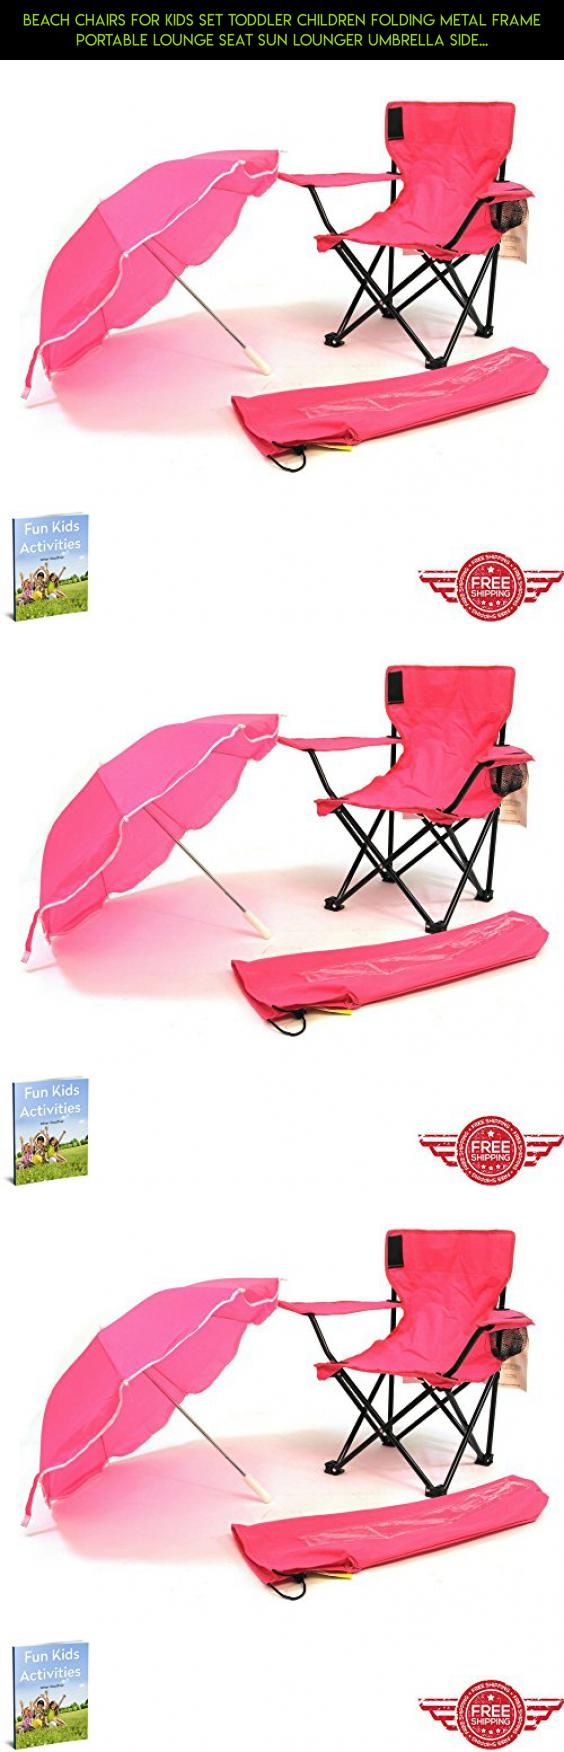 Beach lounge chair side view - Beach Chairs For Kids Set Toddler Children Folding Metal Frame Portable Lounge Seat Sun Lounger Umbrella